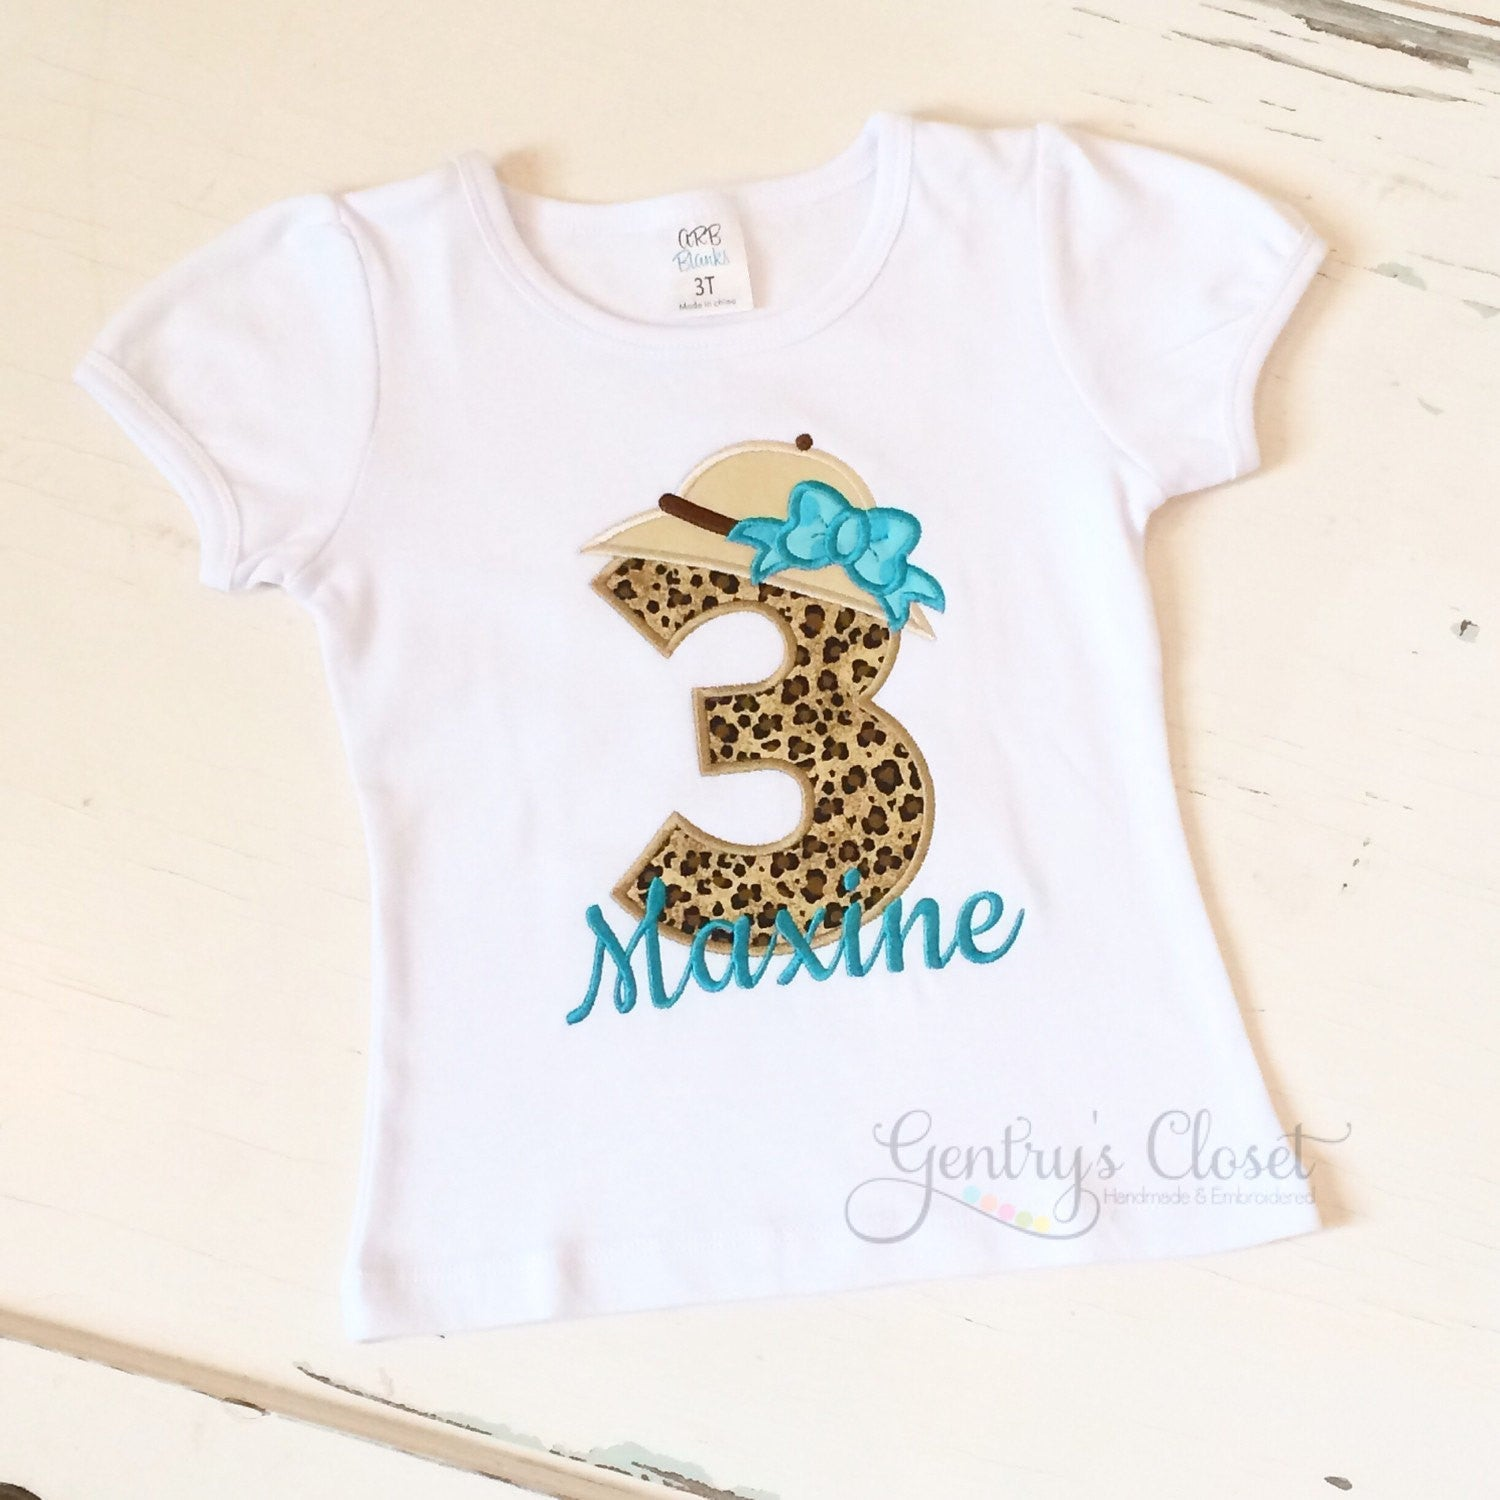 Home Birthday Shirts Girls Safari Shirt With Cheetah Print